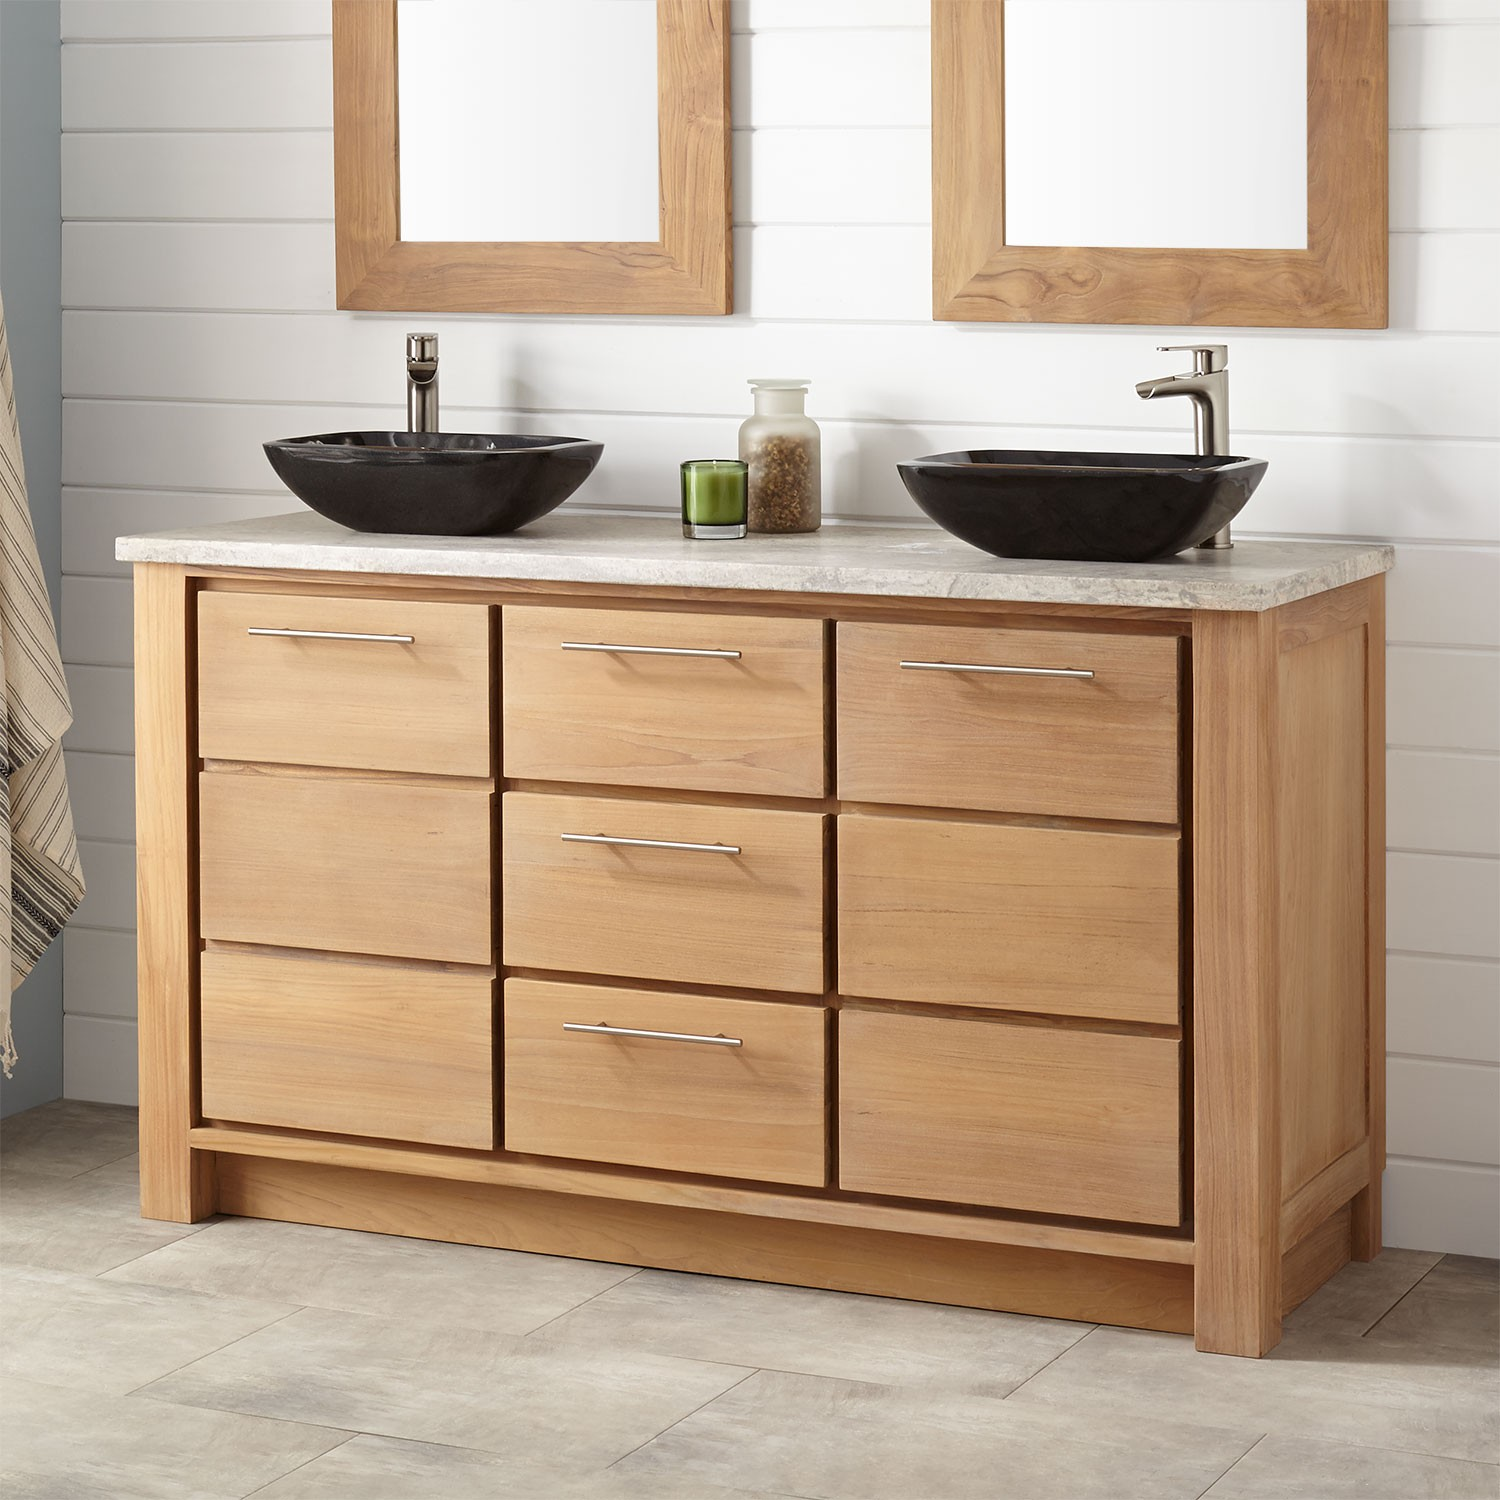 Image of: Popular 60 Double Sink Vanity